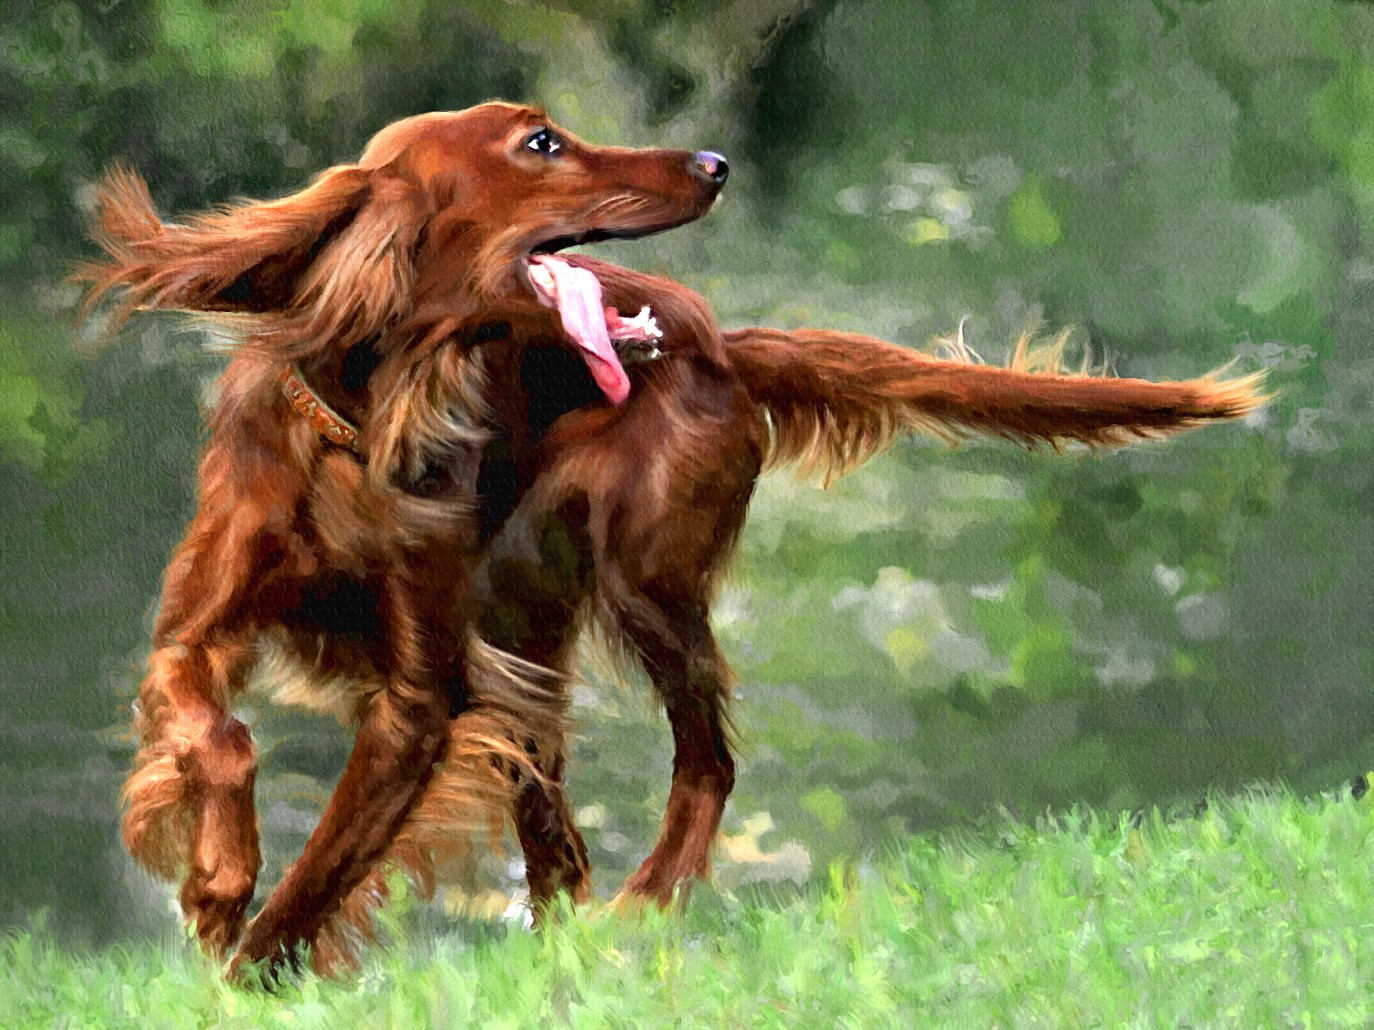 Irish Setter Breed Guide Learn About The Irish Setter